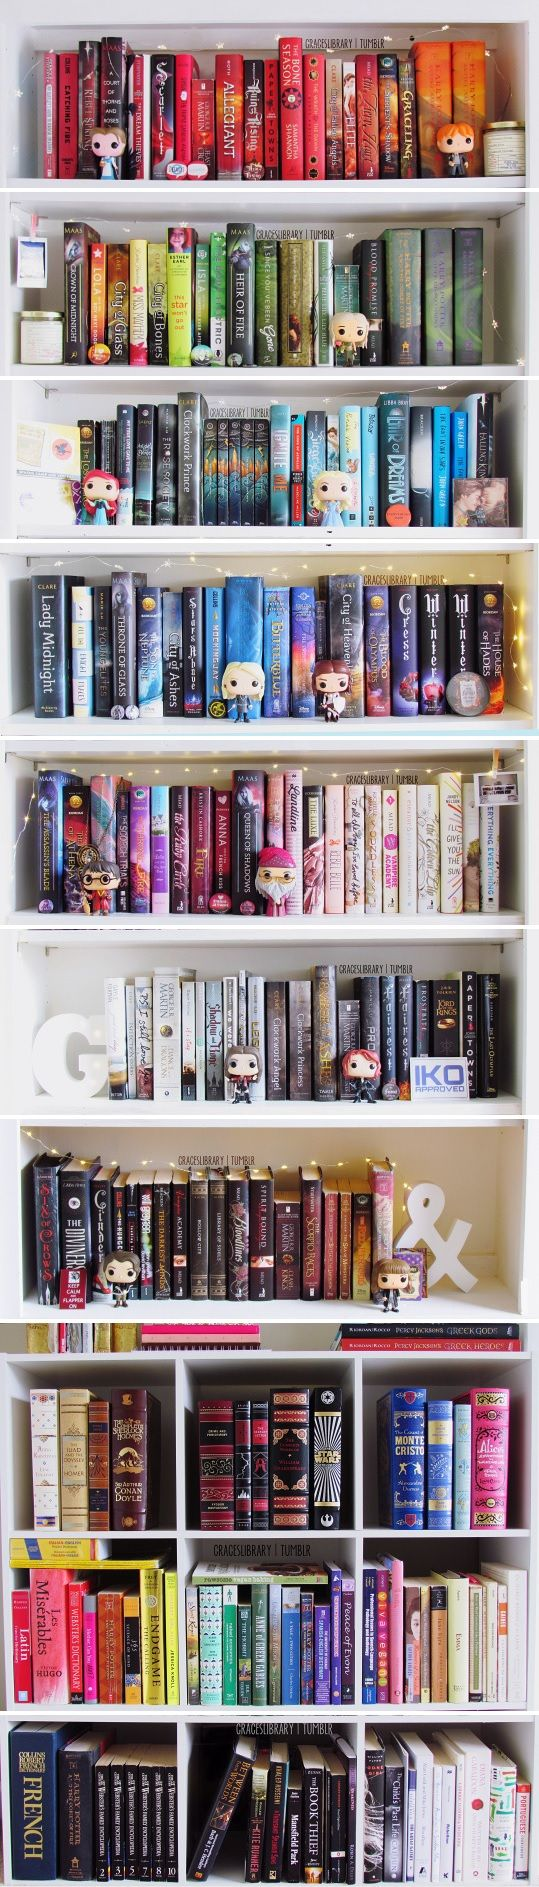 Colour sorted Bookshelf matching Funko Pop figurines